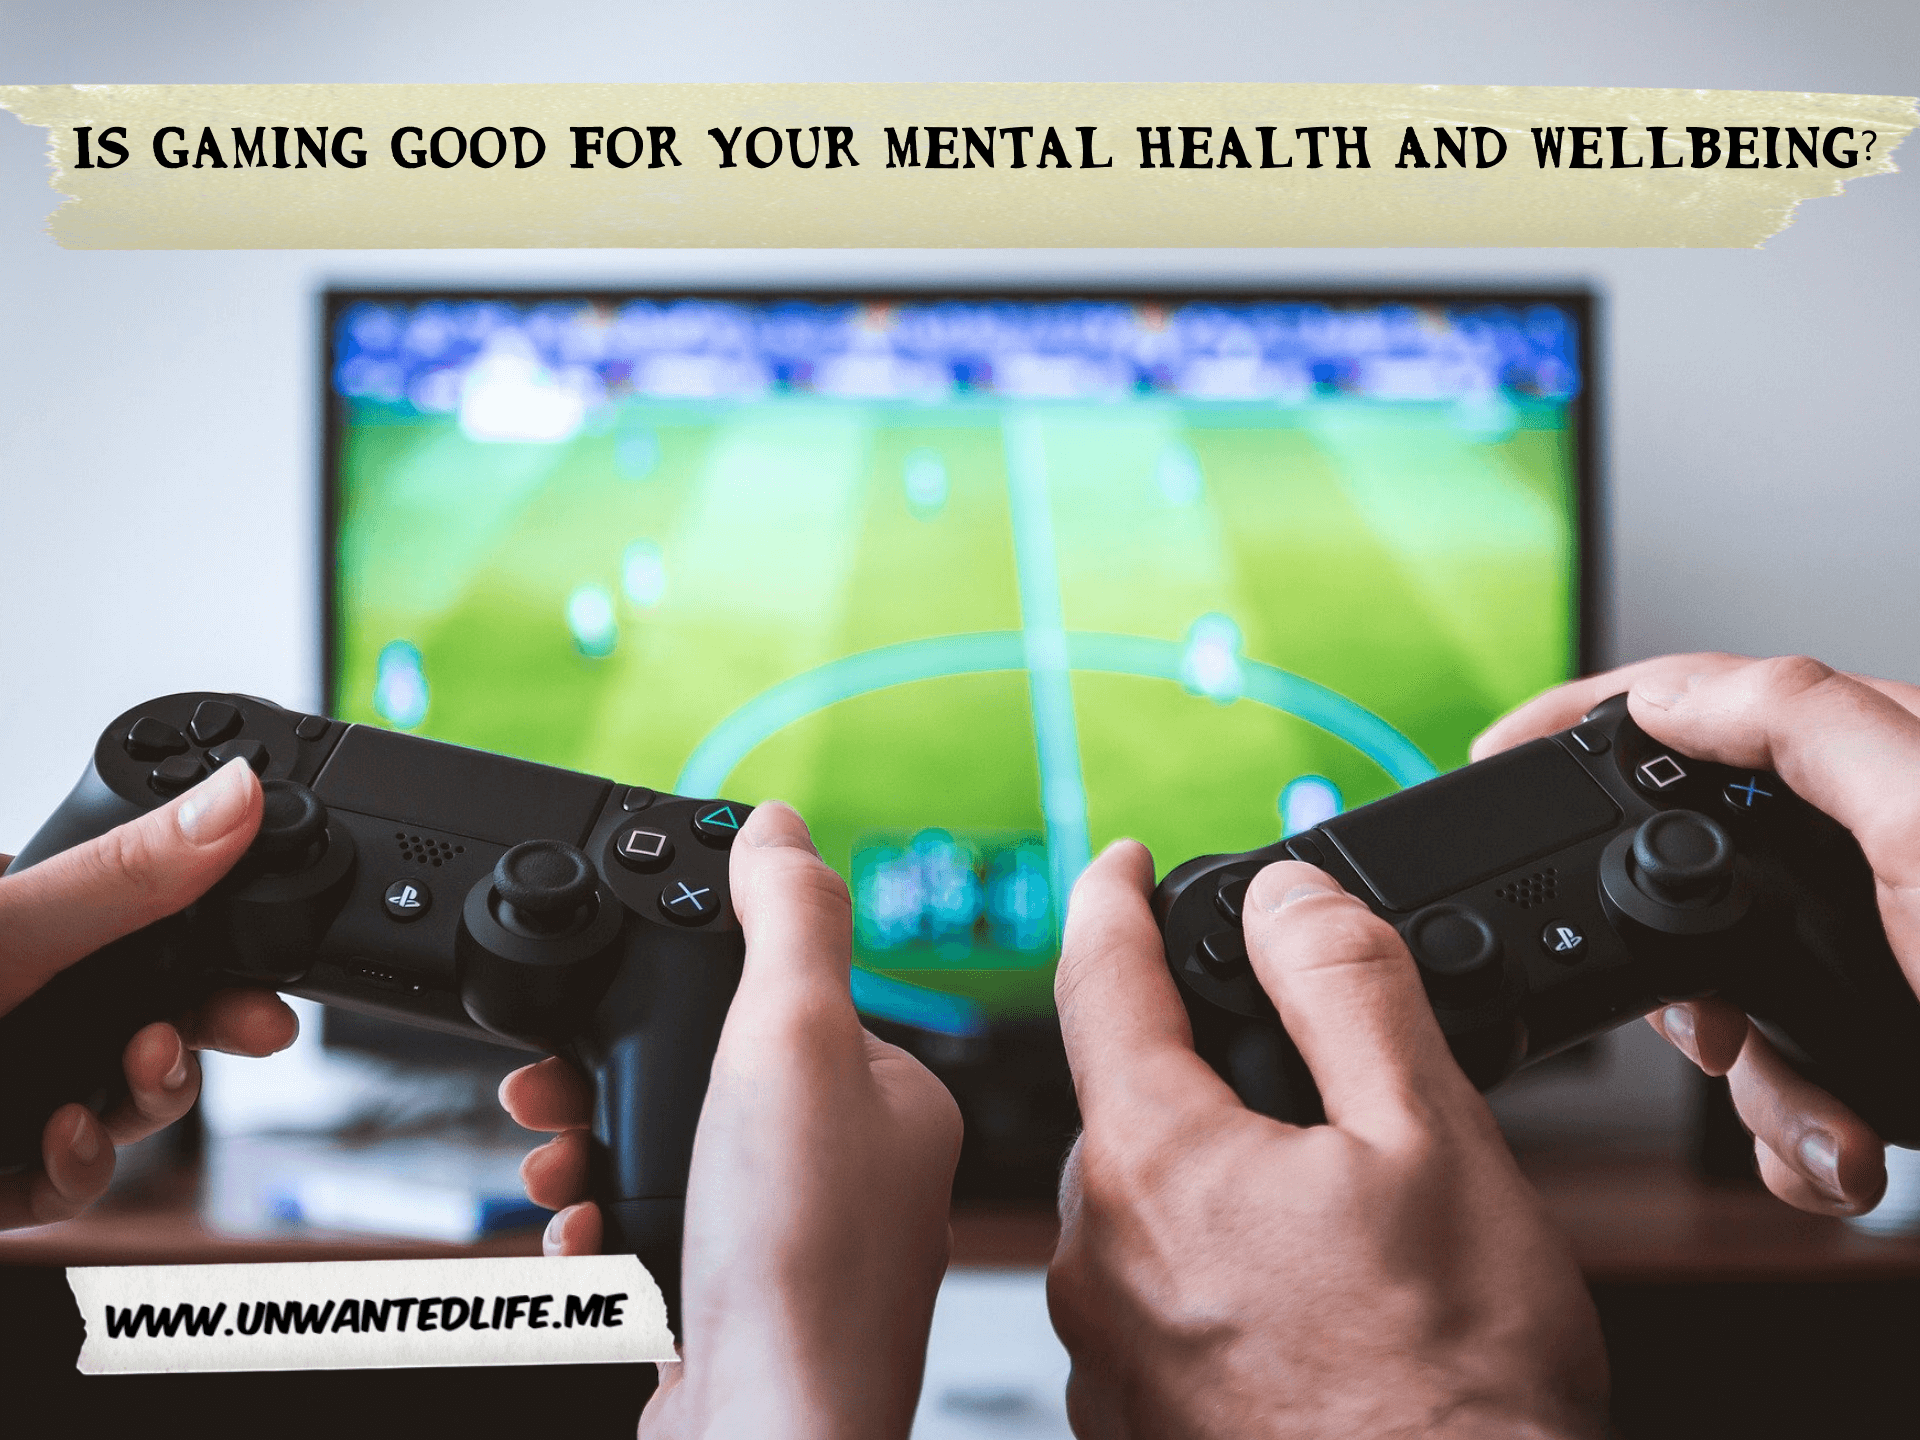 A picture of two white people playing a football game on the PS3 on a flat screen TV to represent the topic of the article - Is Gaming Good For Your Mental Health And Wellbeing